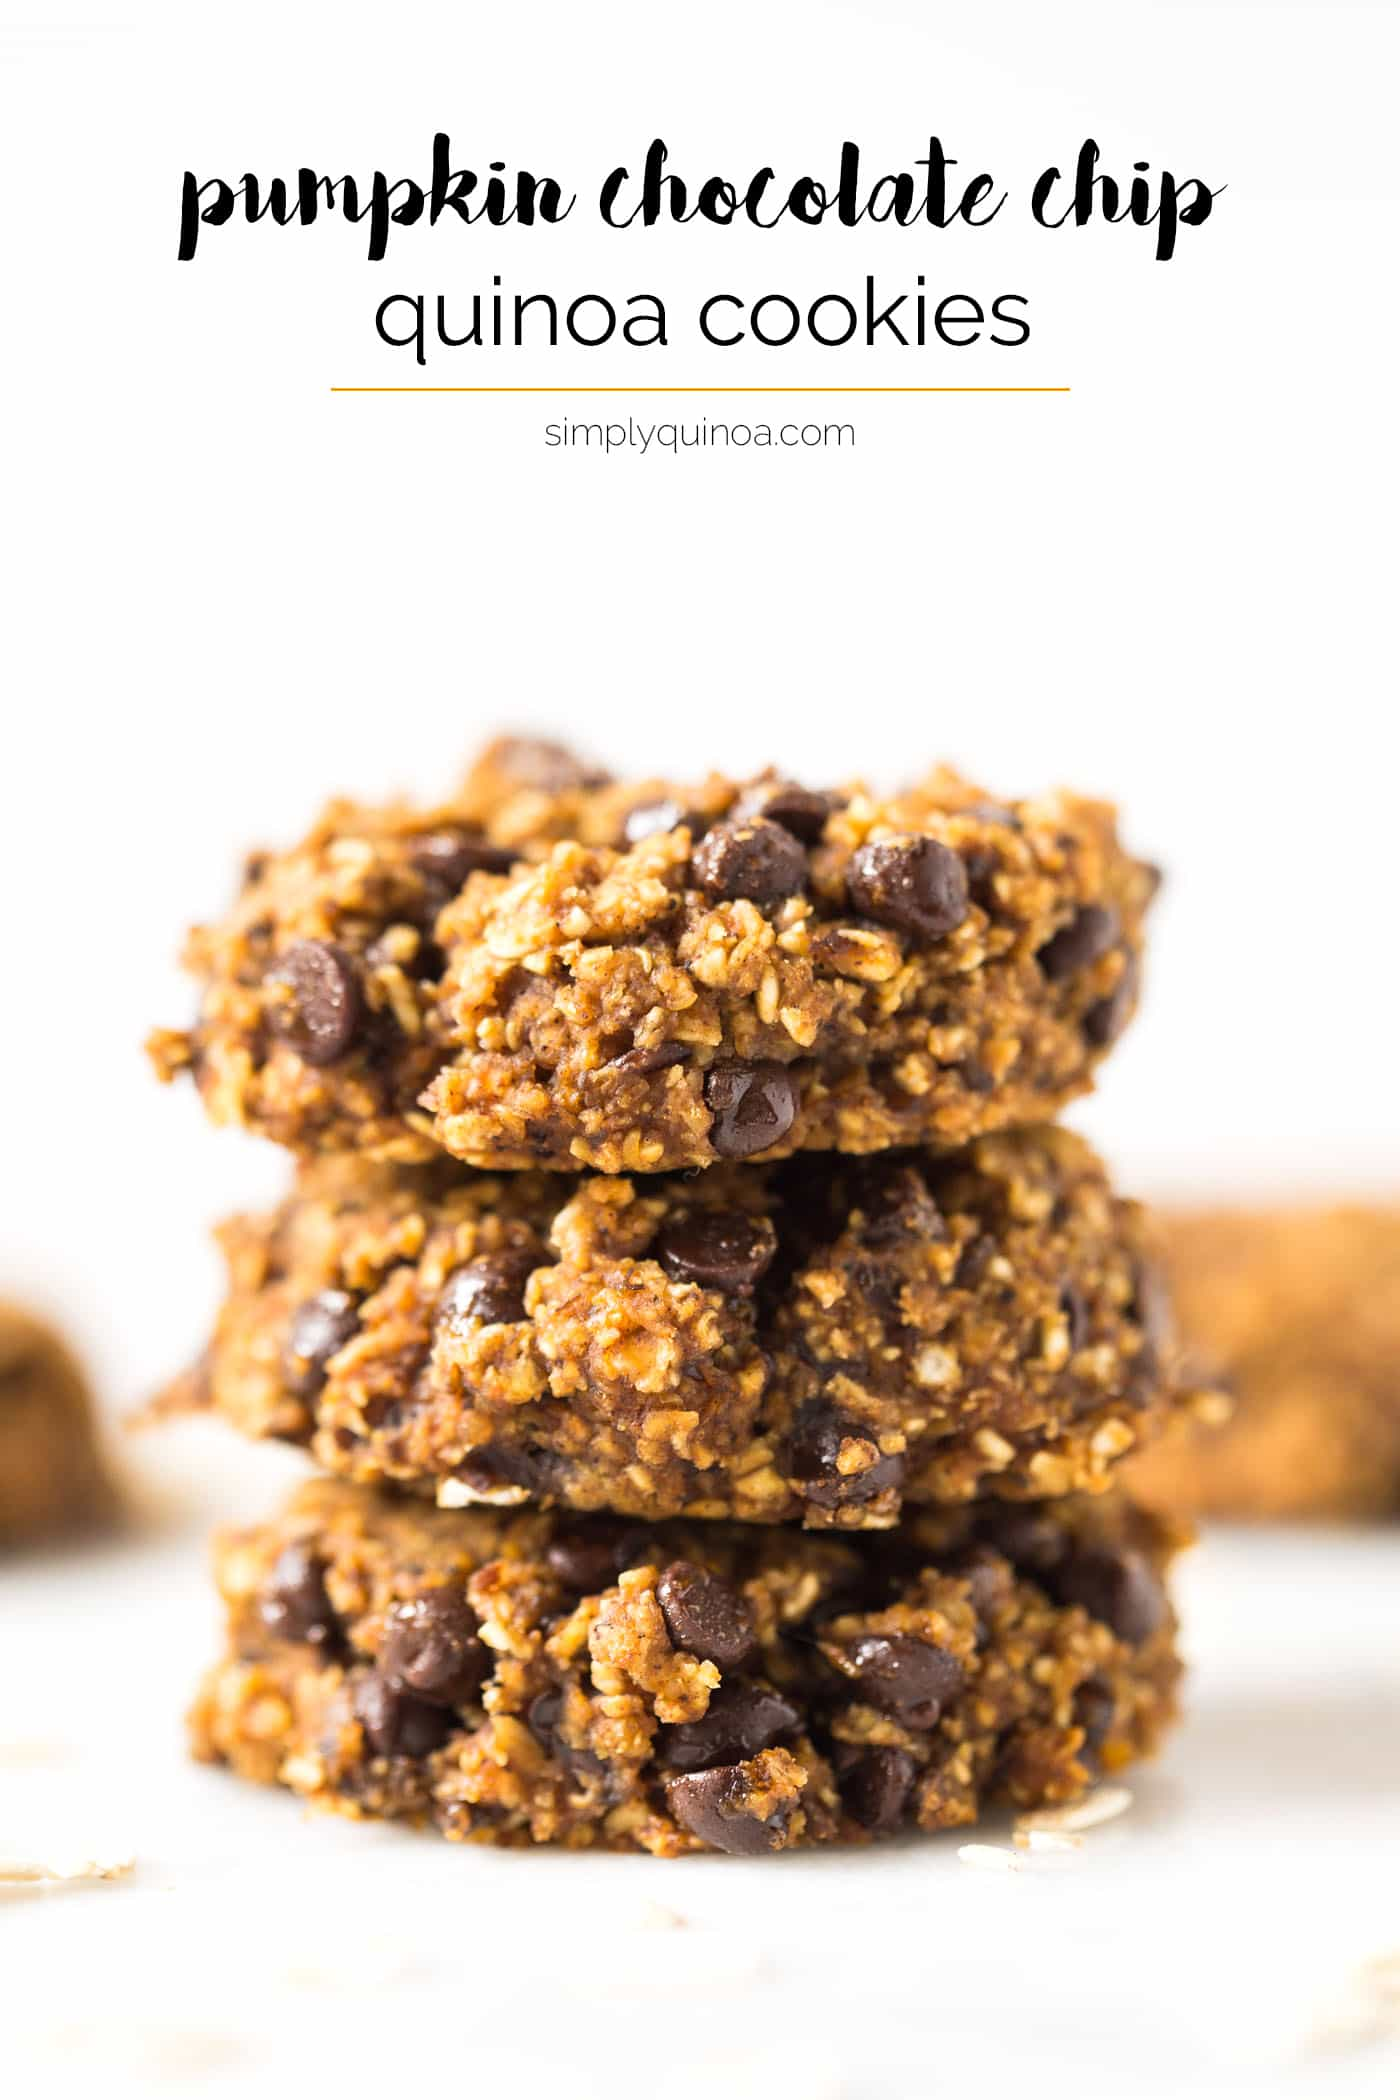 PUMPKIN CHOCOLATE CHIP COOKIES -- made healthy without any oil, butter, gluten, eggs or refined sugar!